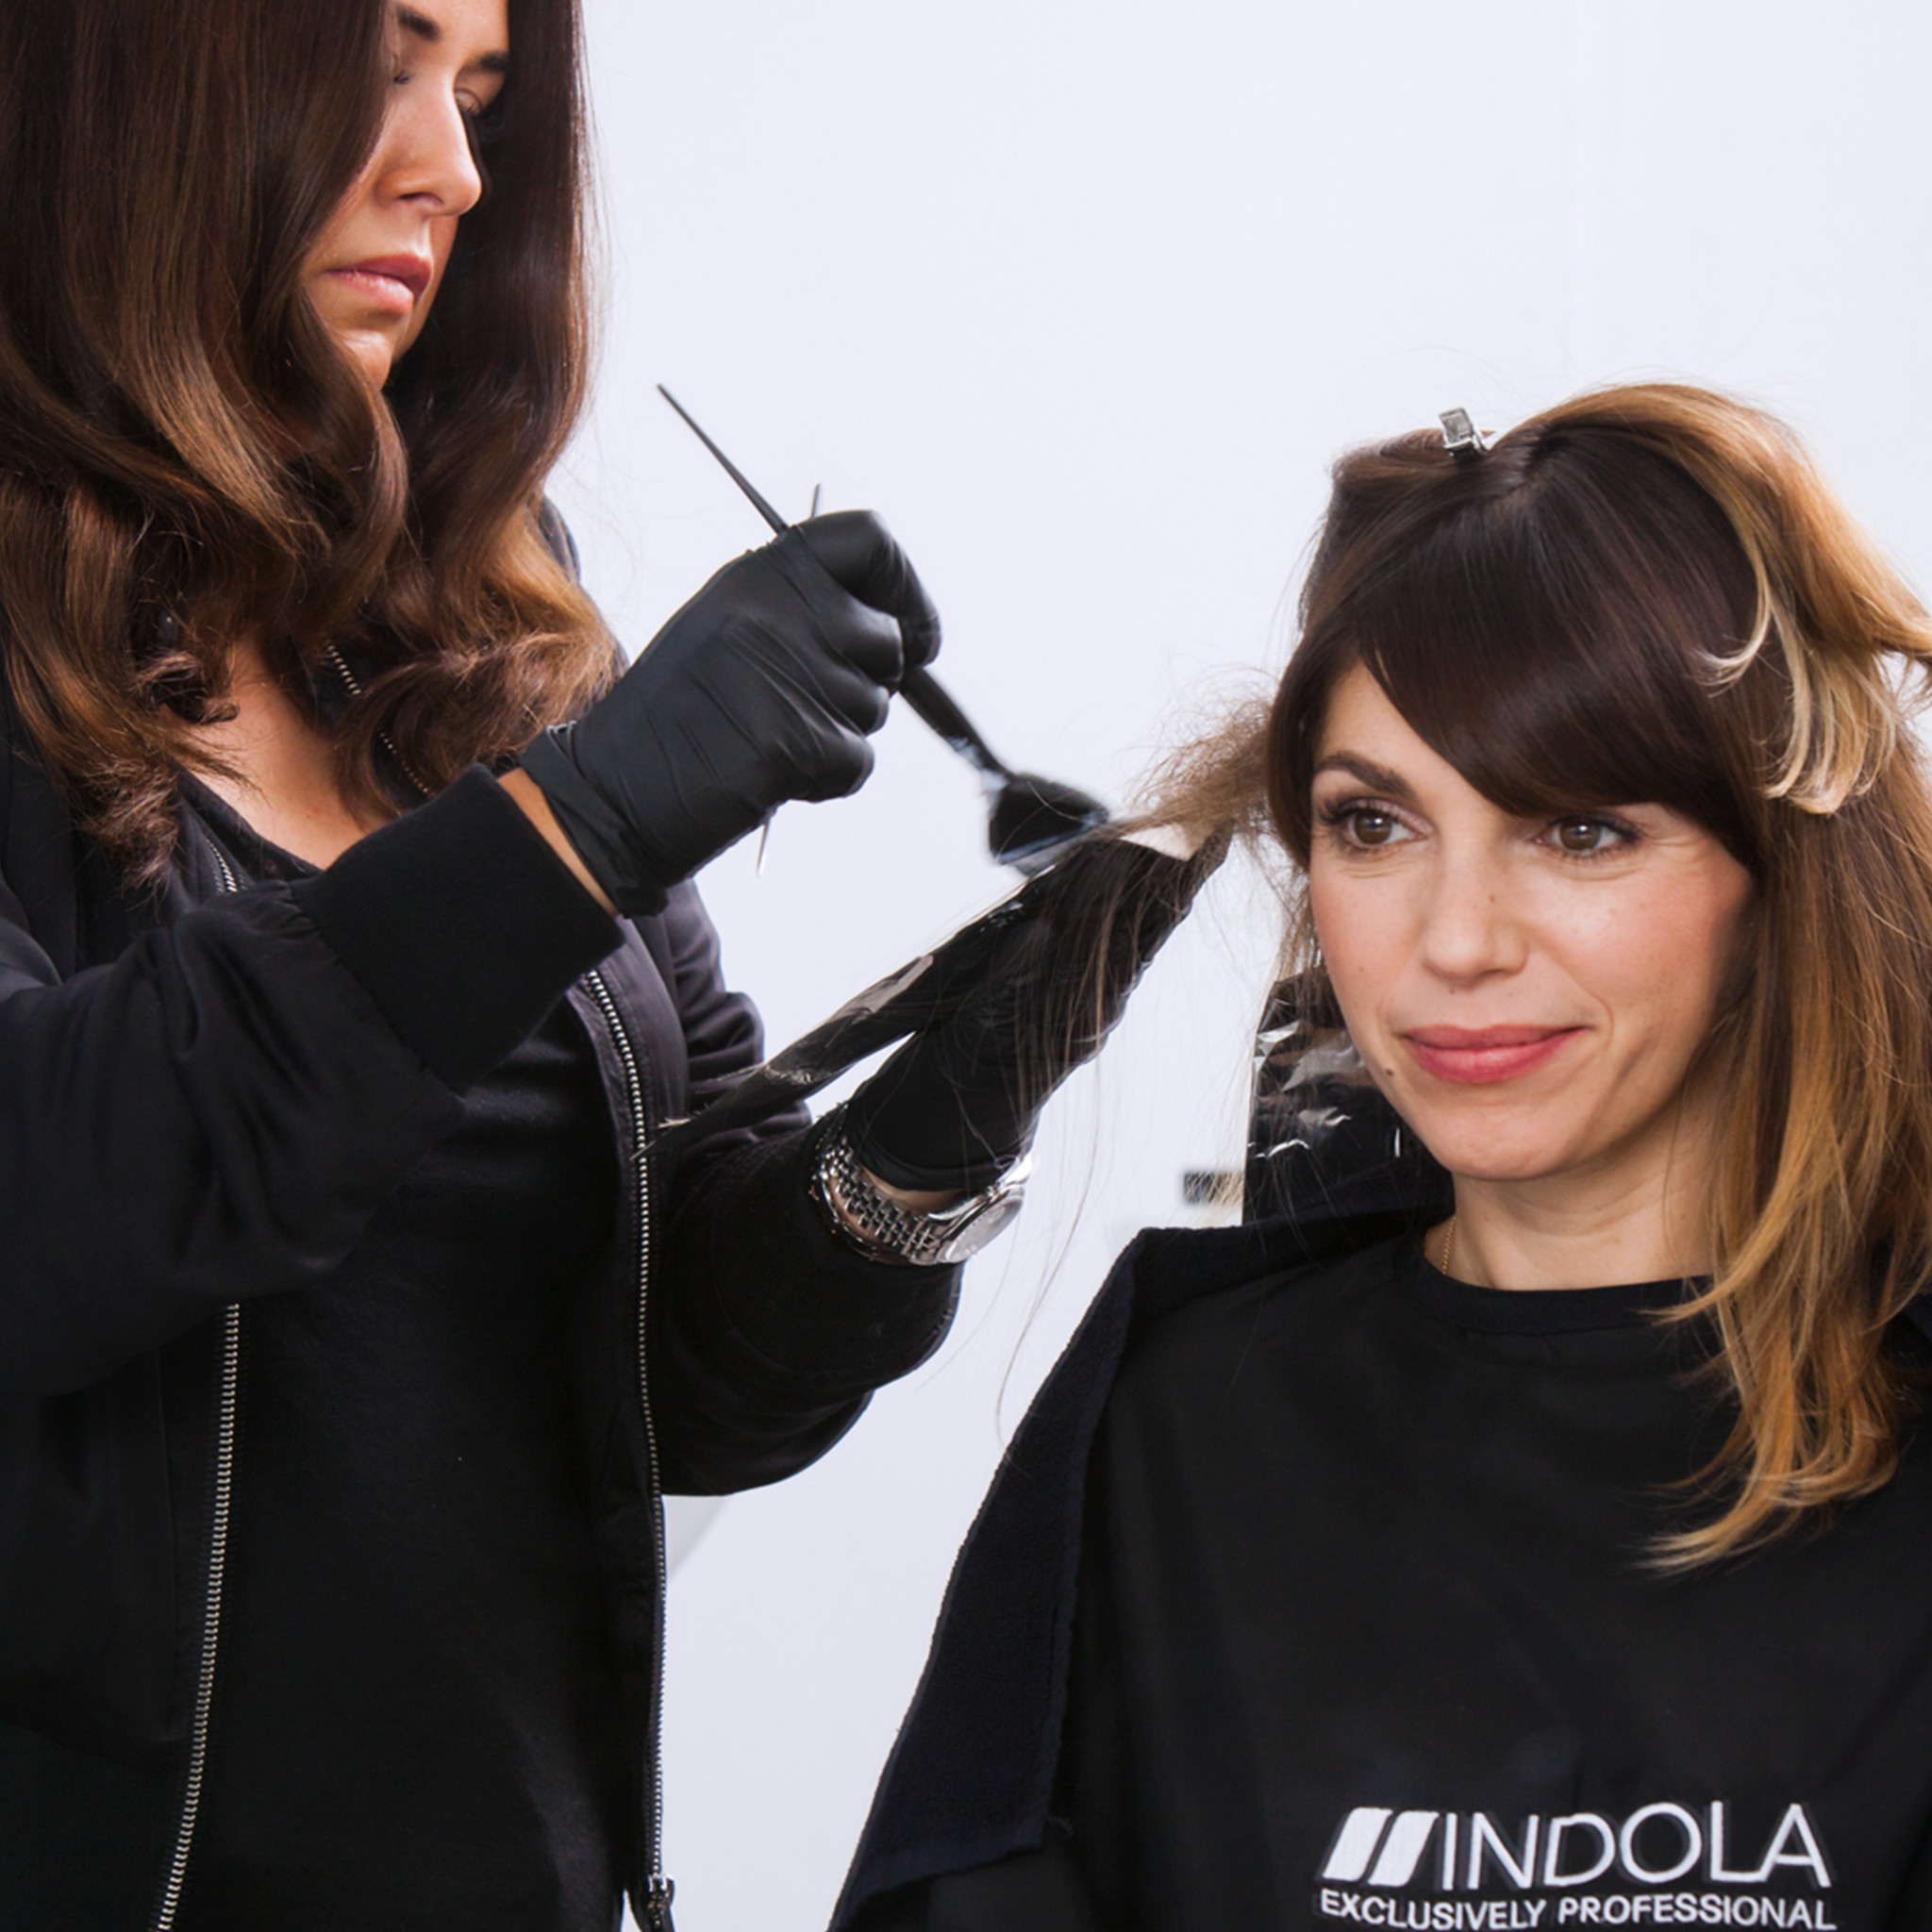 indola_product_general_lb_color2